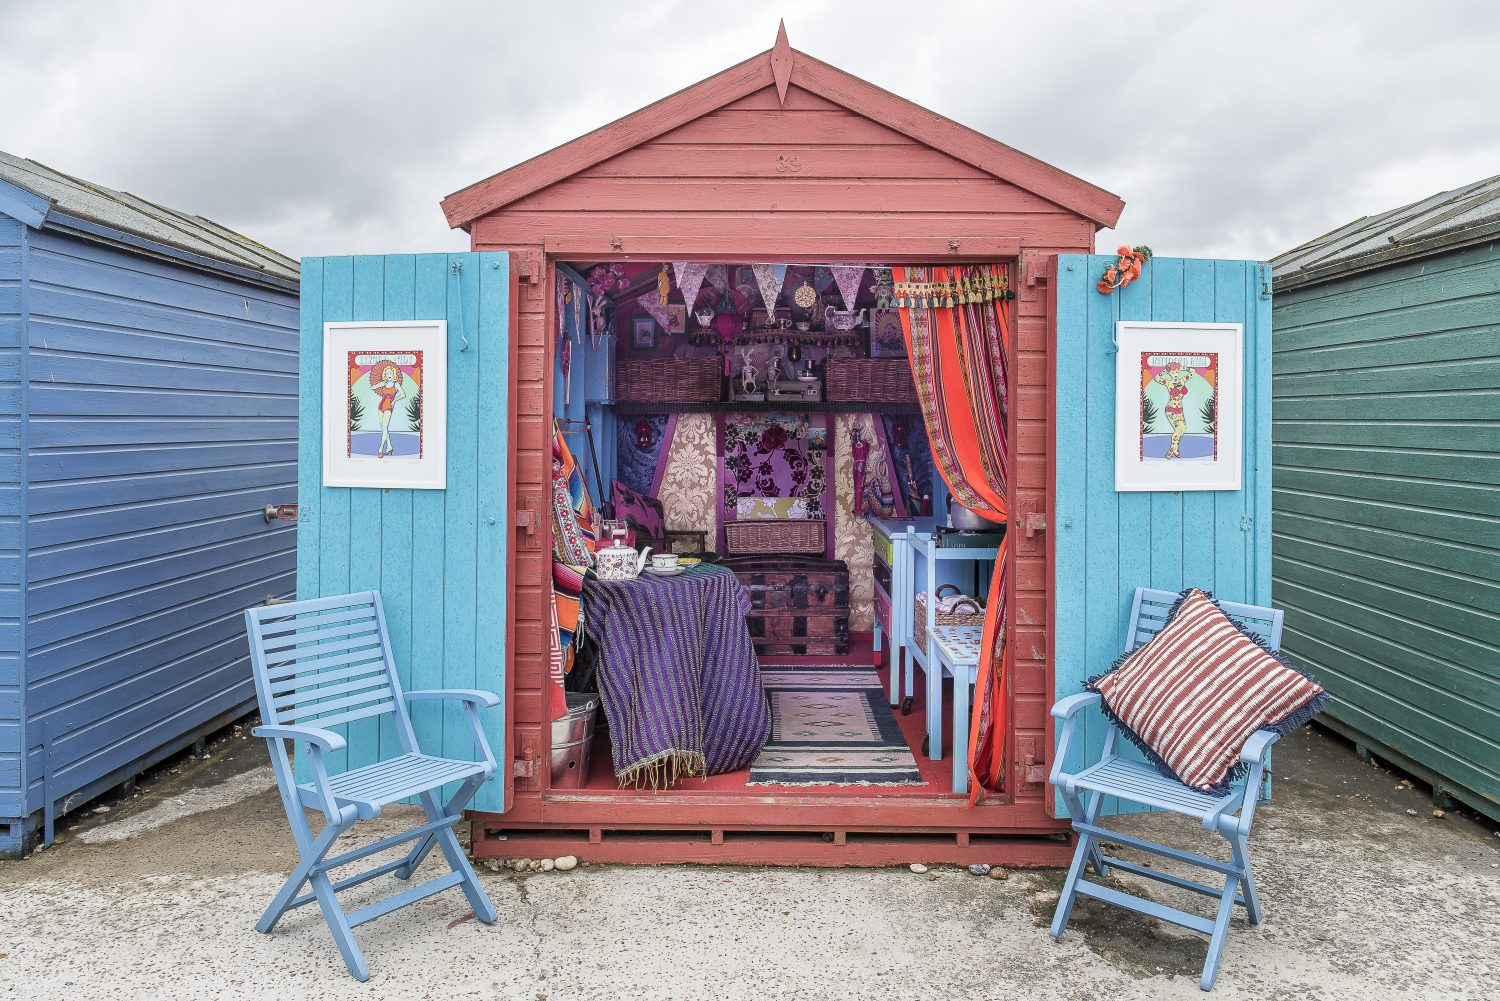 The beach hut in St Leonards that Annemarie shares with her friends Lulu Cousin and Tiff McGinnis